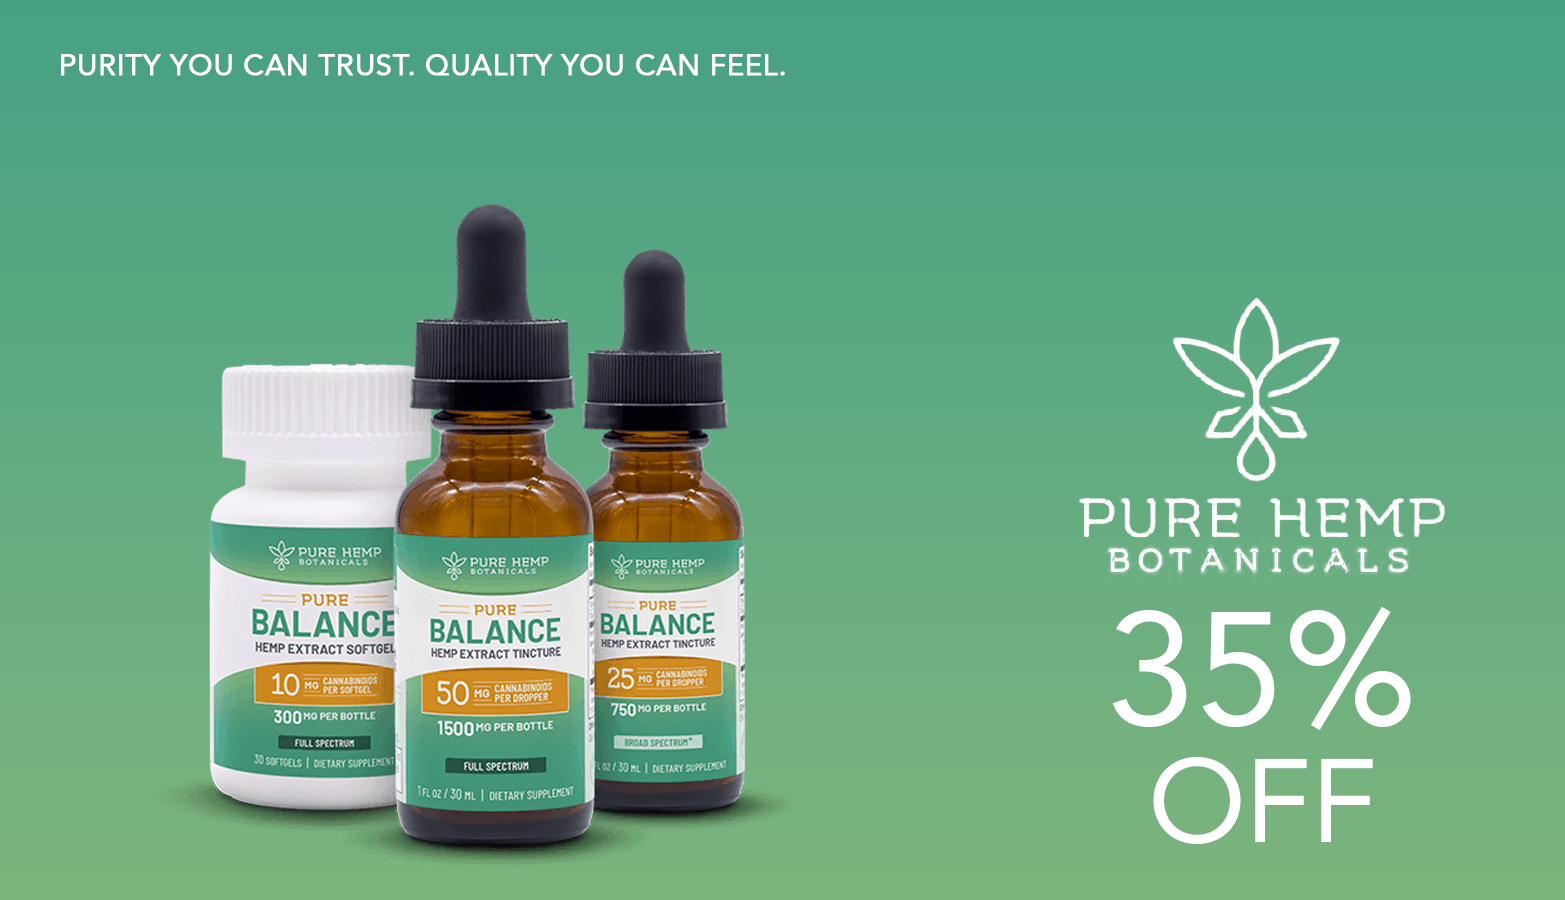 Pure Hemp Botanicals CBD Coupon Code 35 Percent Offer Website